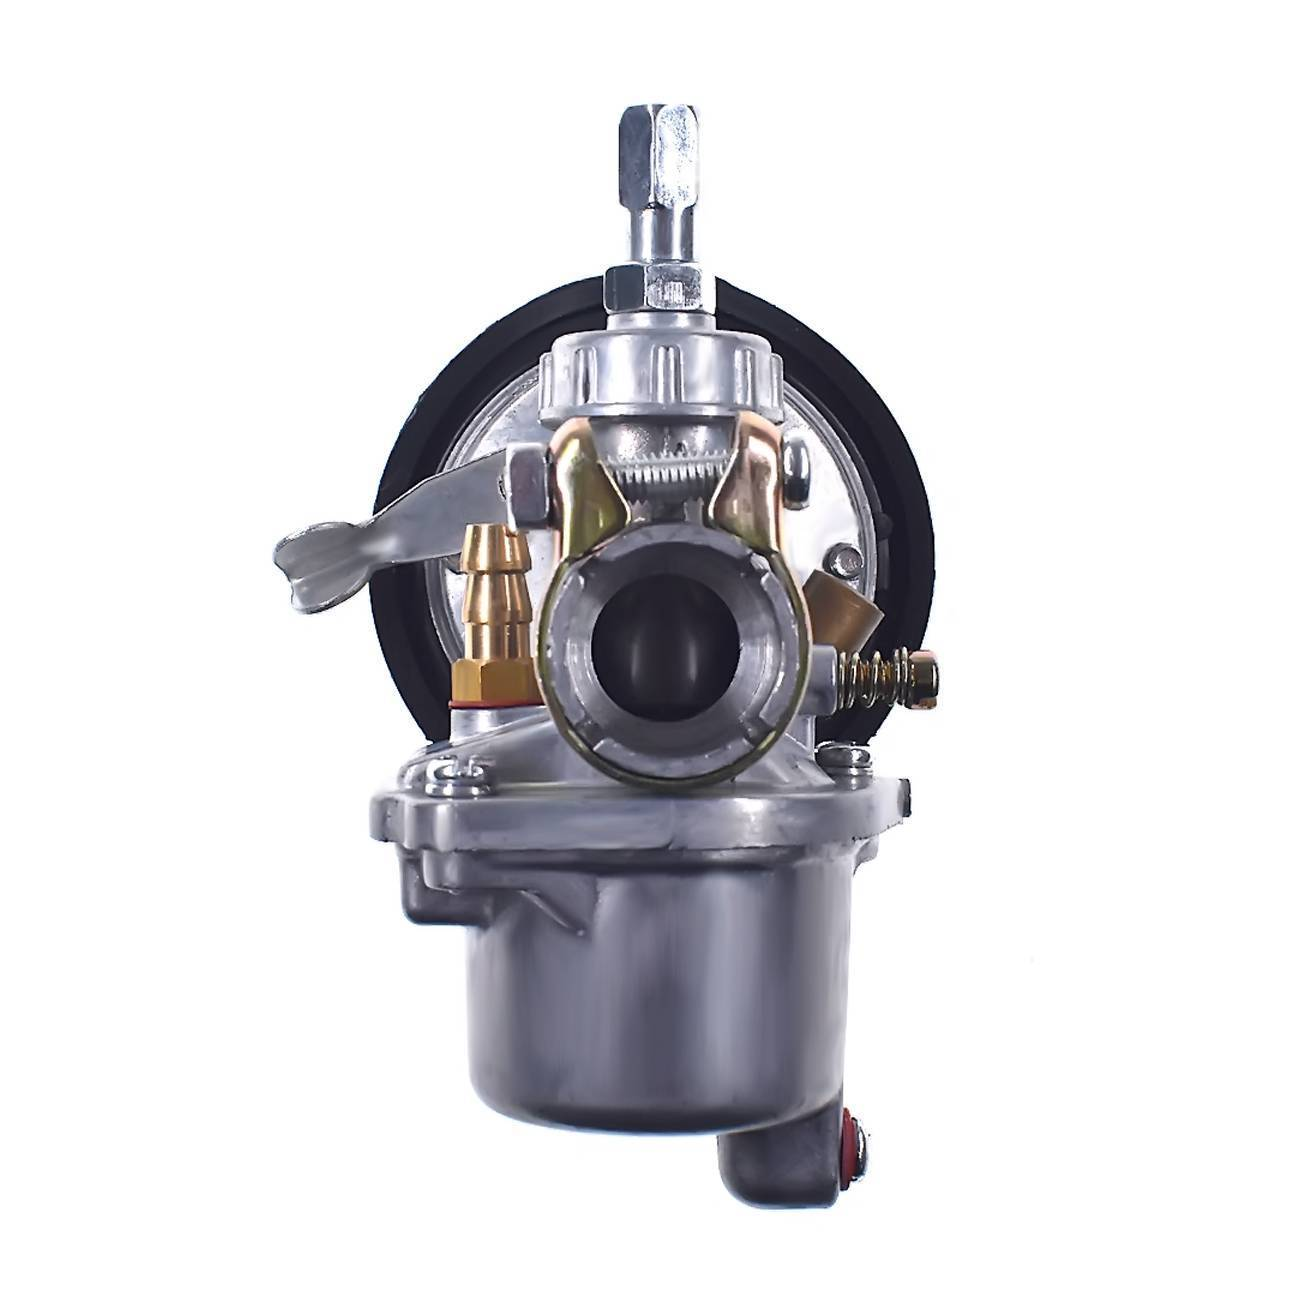 1pc <font><b>Carburetor</b></font> For 49cc 60cc 66cc <font><b>80cc</b></font> 2 Stroke Engine Motorized Bicycle Bike Carb Carby image